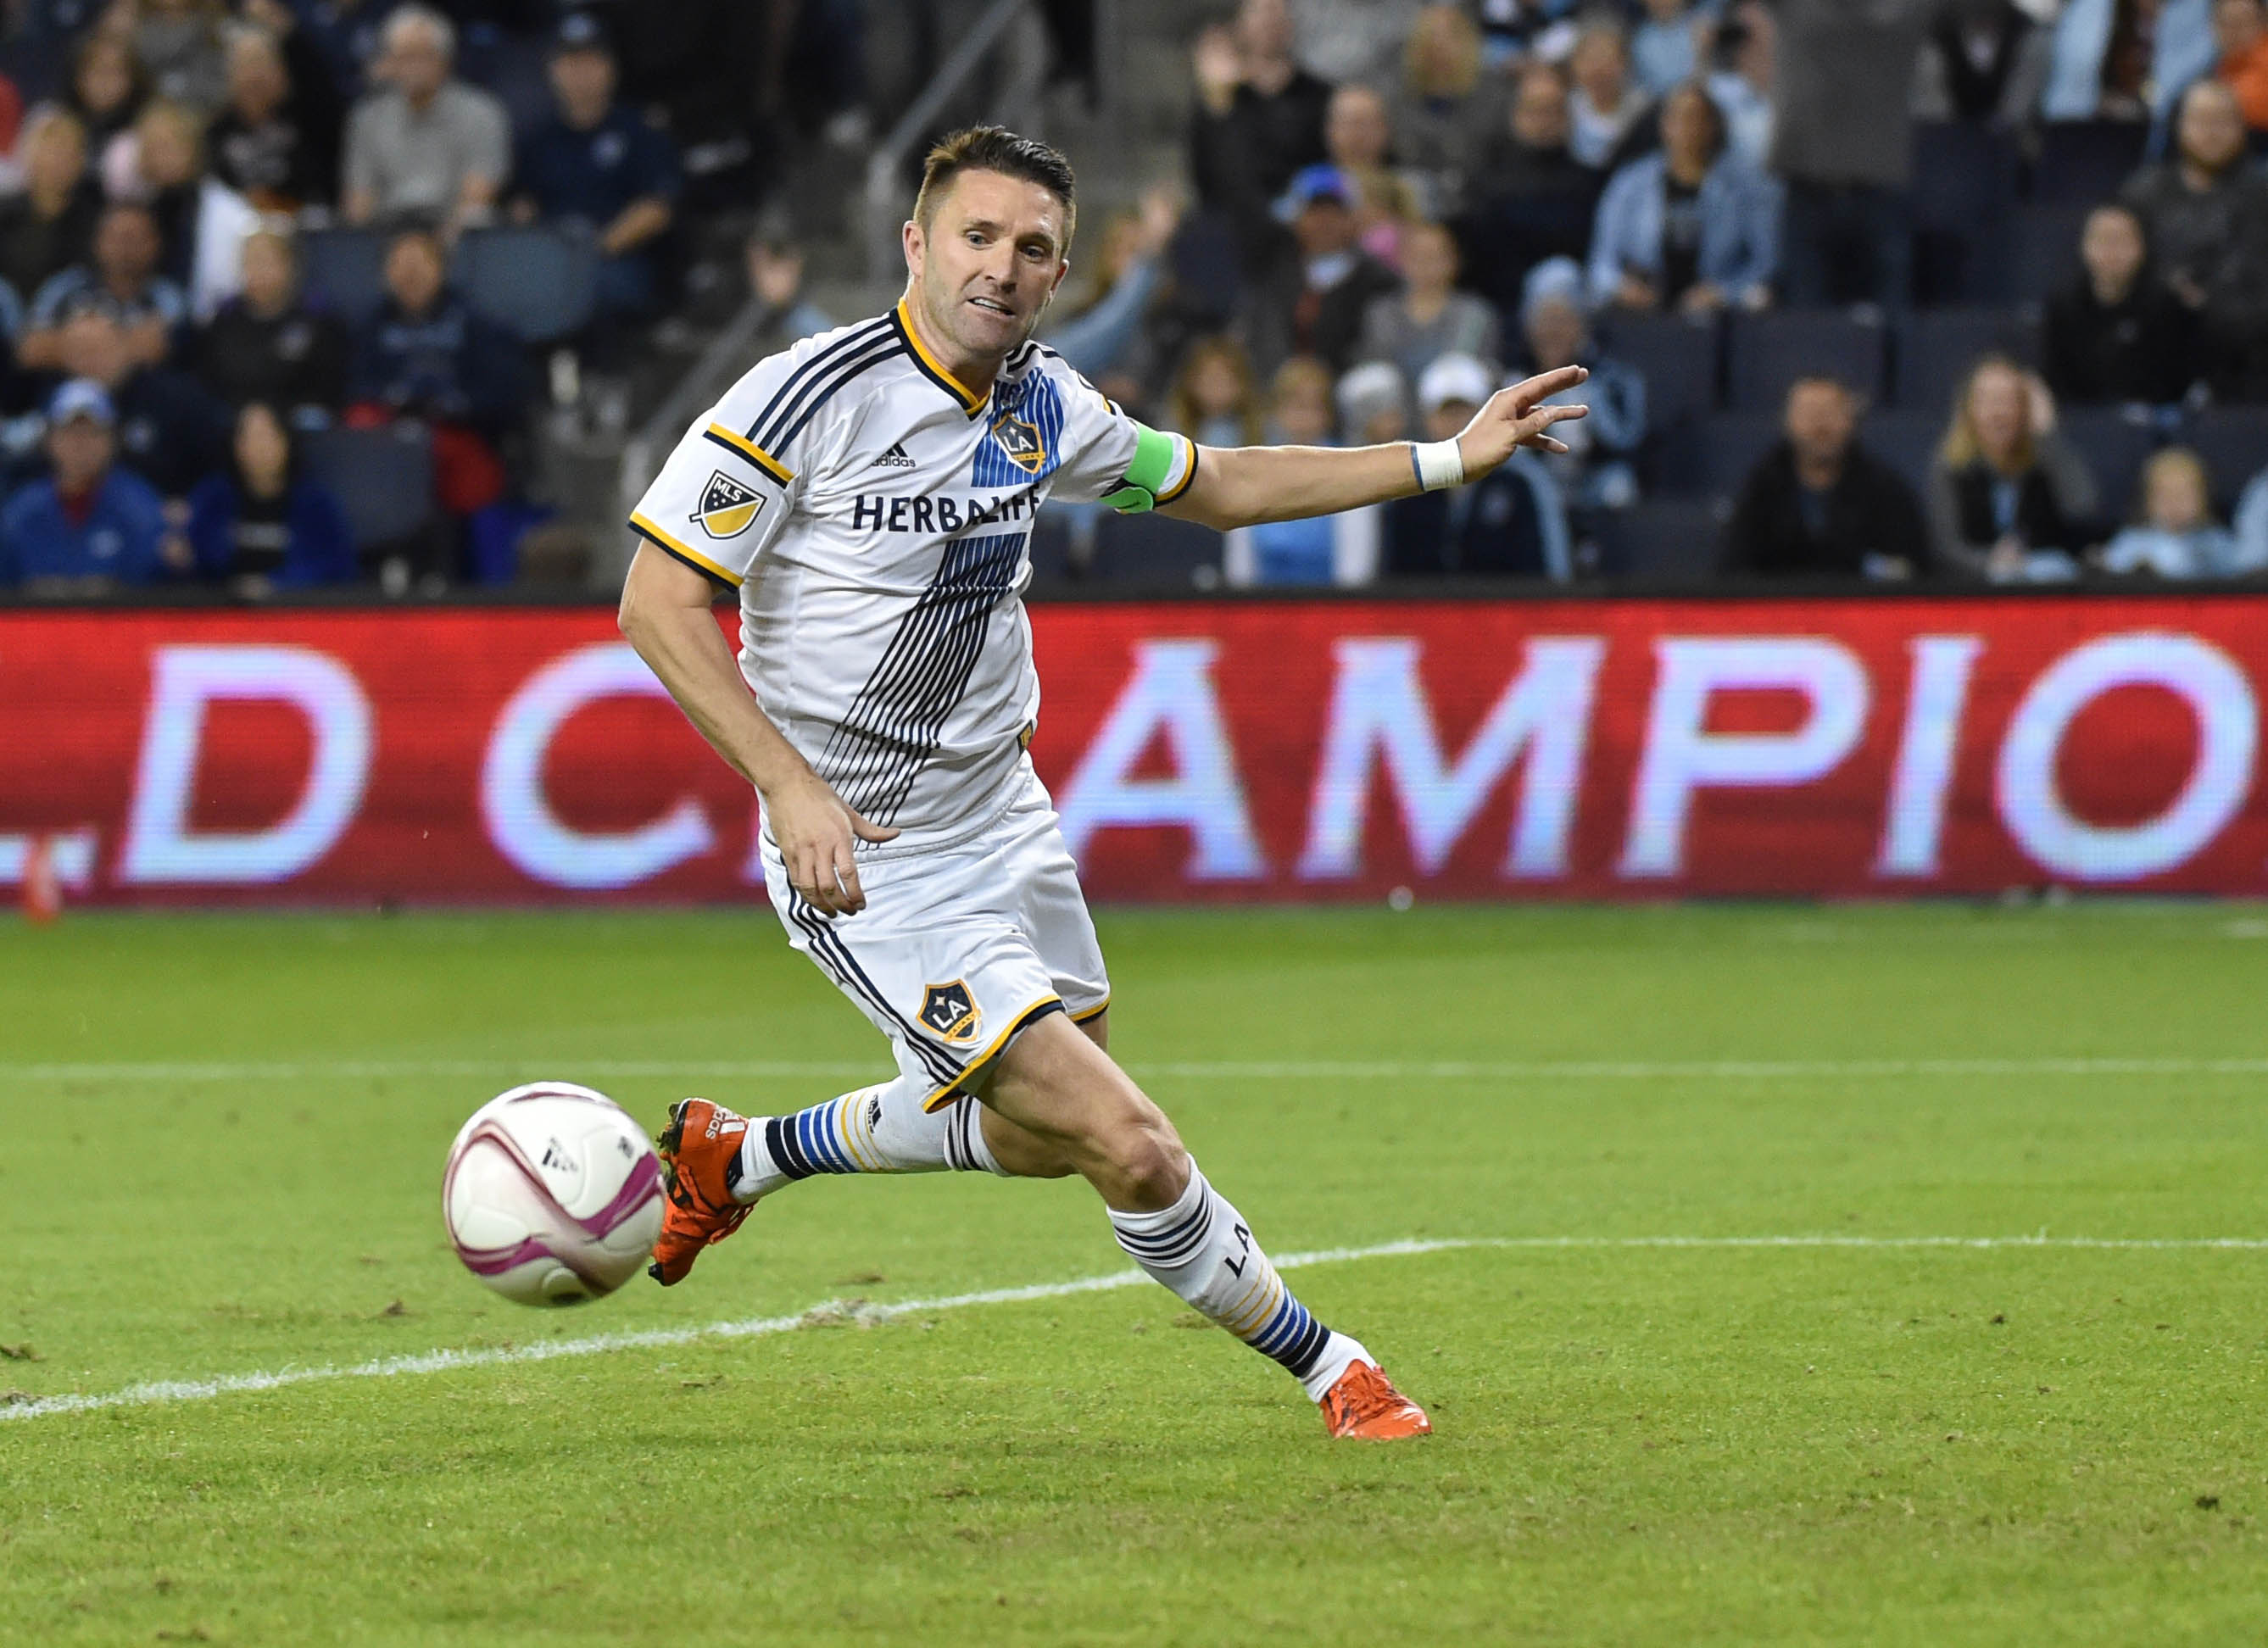 What other EPL players could join LA Galaxy's Robbie Keane in MLS?